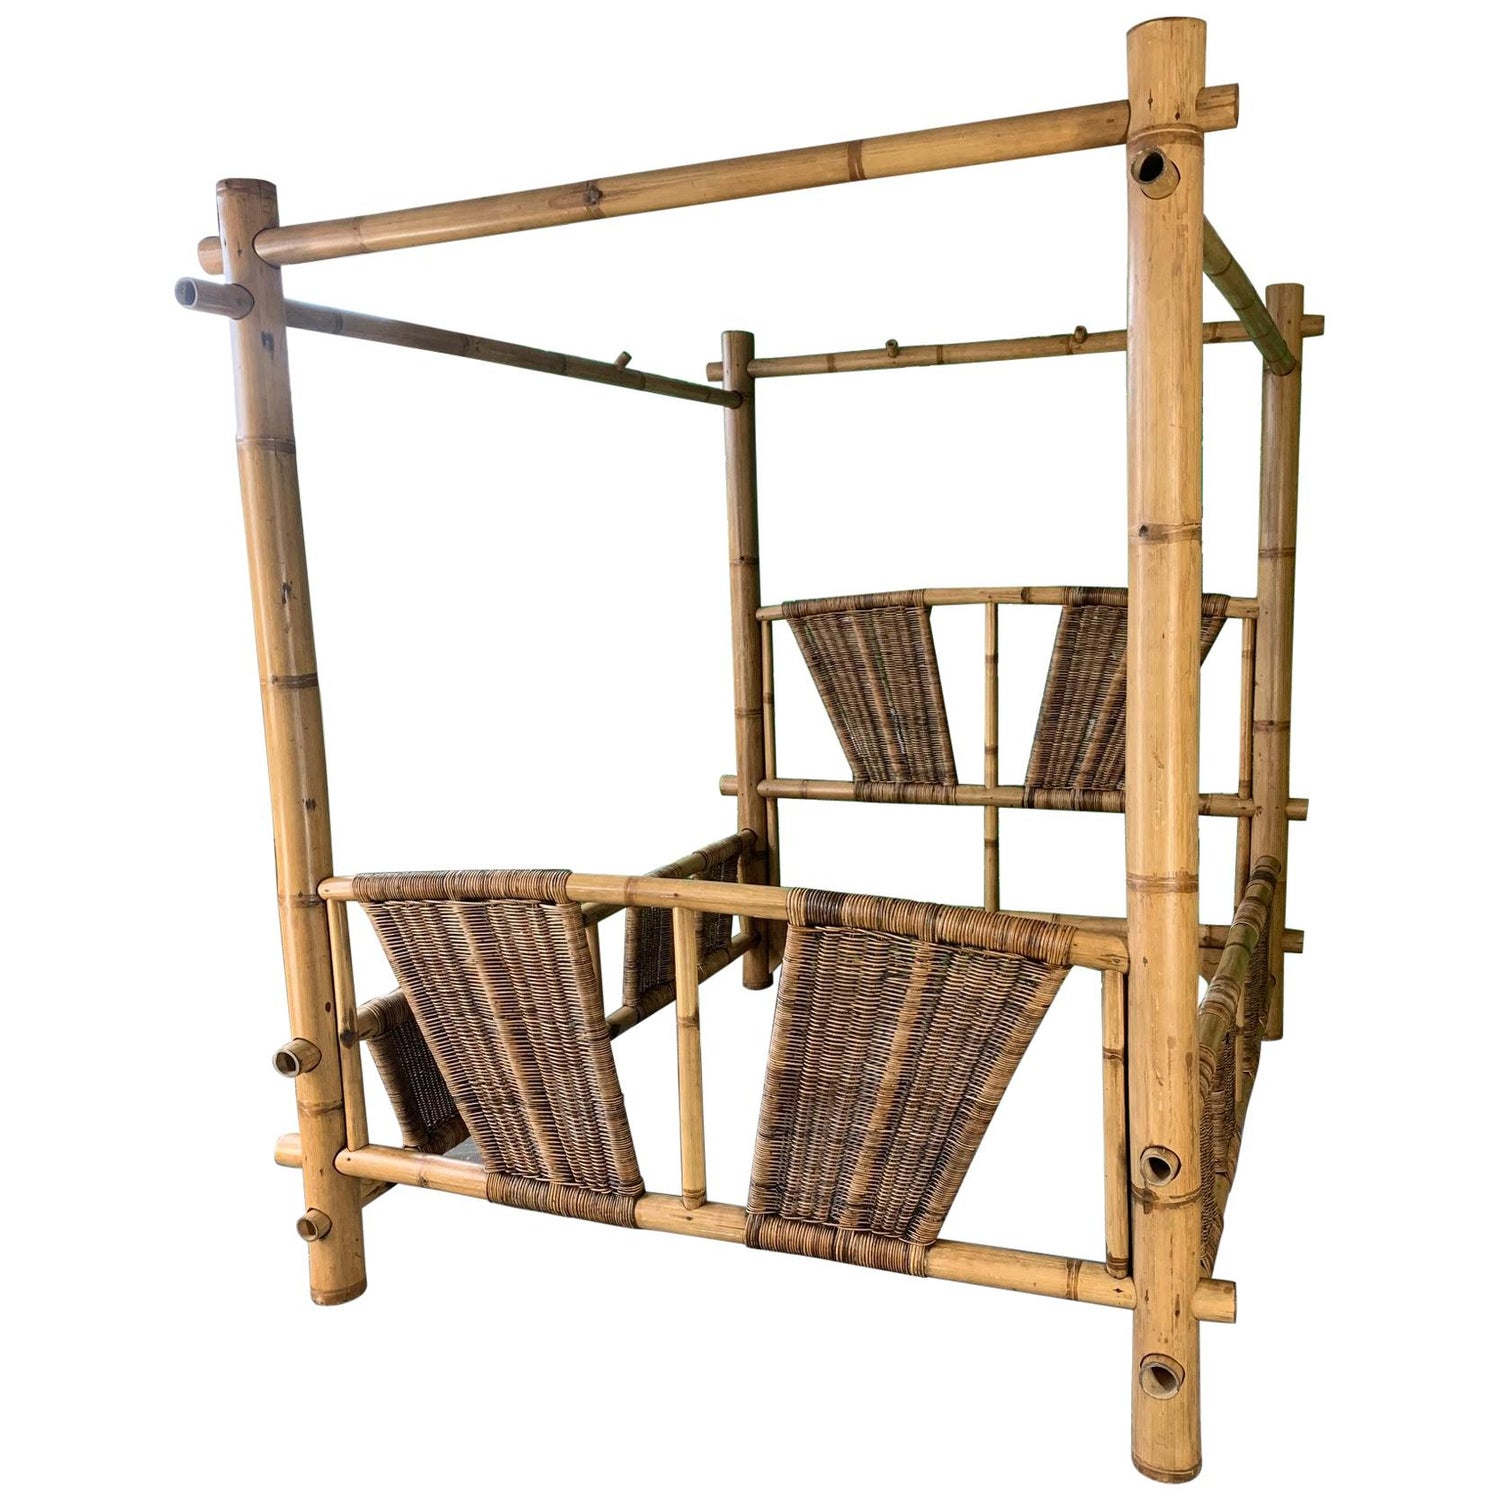 Queen Size Bamboo Canopy Bed For Sale at 1stdibs